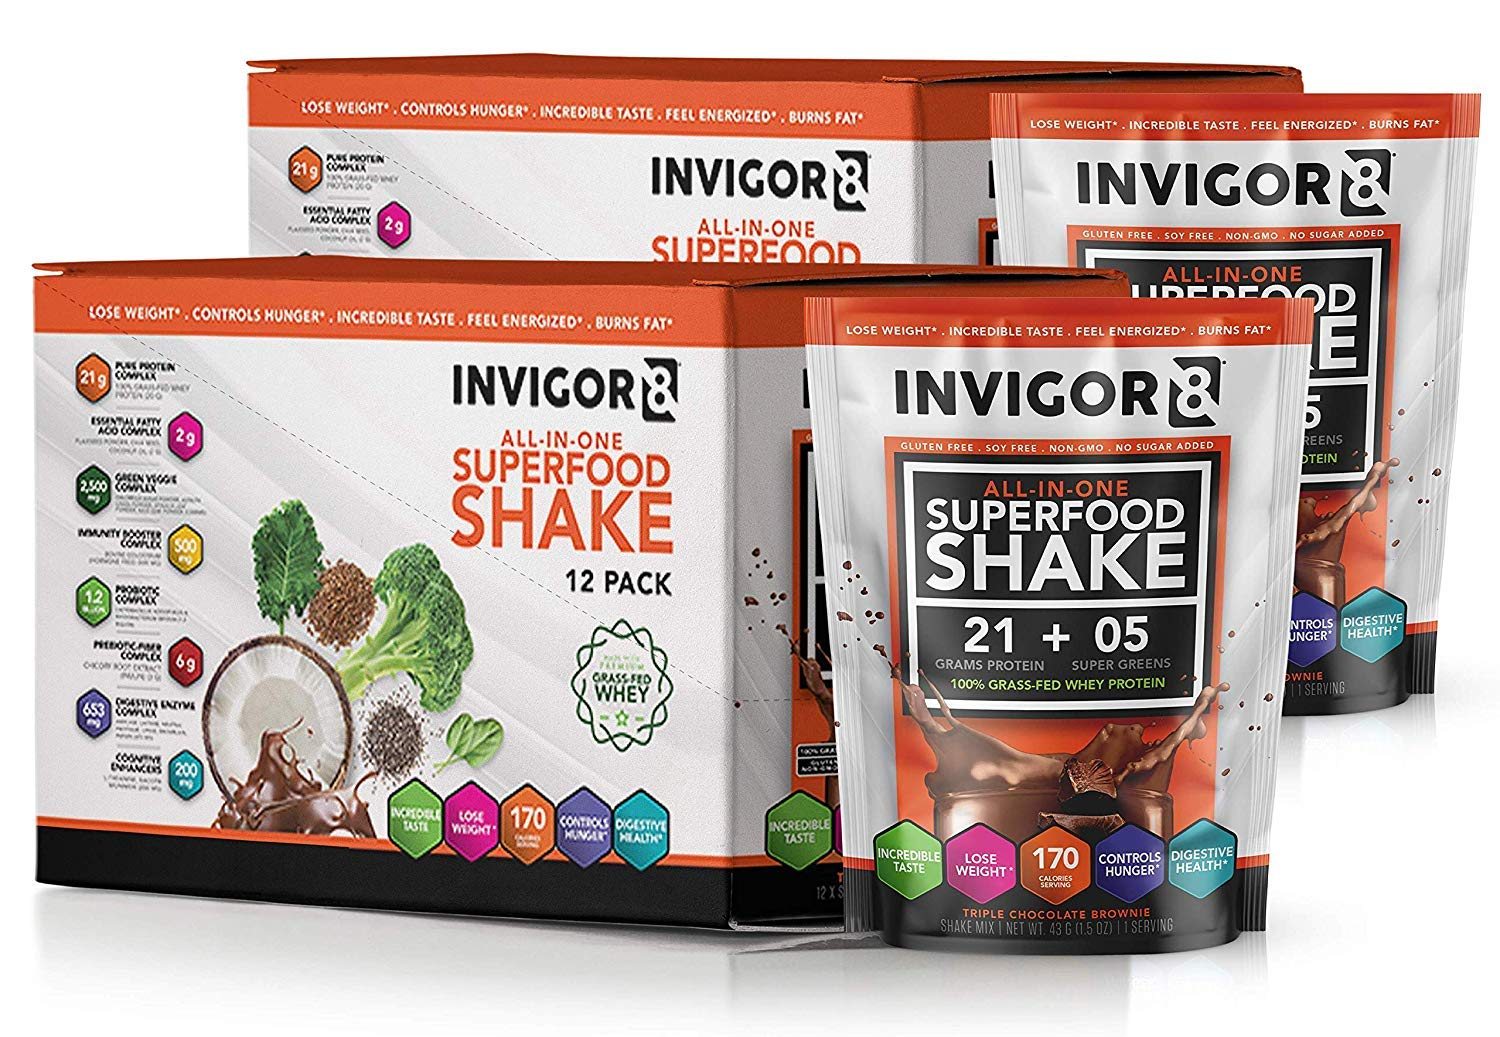 INVIGOR8 Superfood Shake Gluten-Free and Non GMO Meal Replacement Grass-Fed Whey Protein Shake with Probiotics and Omega 3 (645g) (Pouches (12-pk) Chocolate Brownie) (2 Pack Chocolate (Save 15)) by BRL (Image #1)